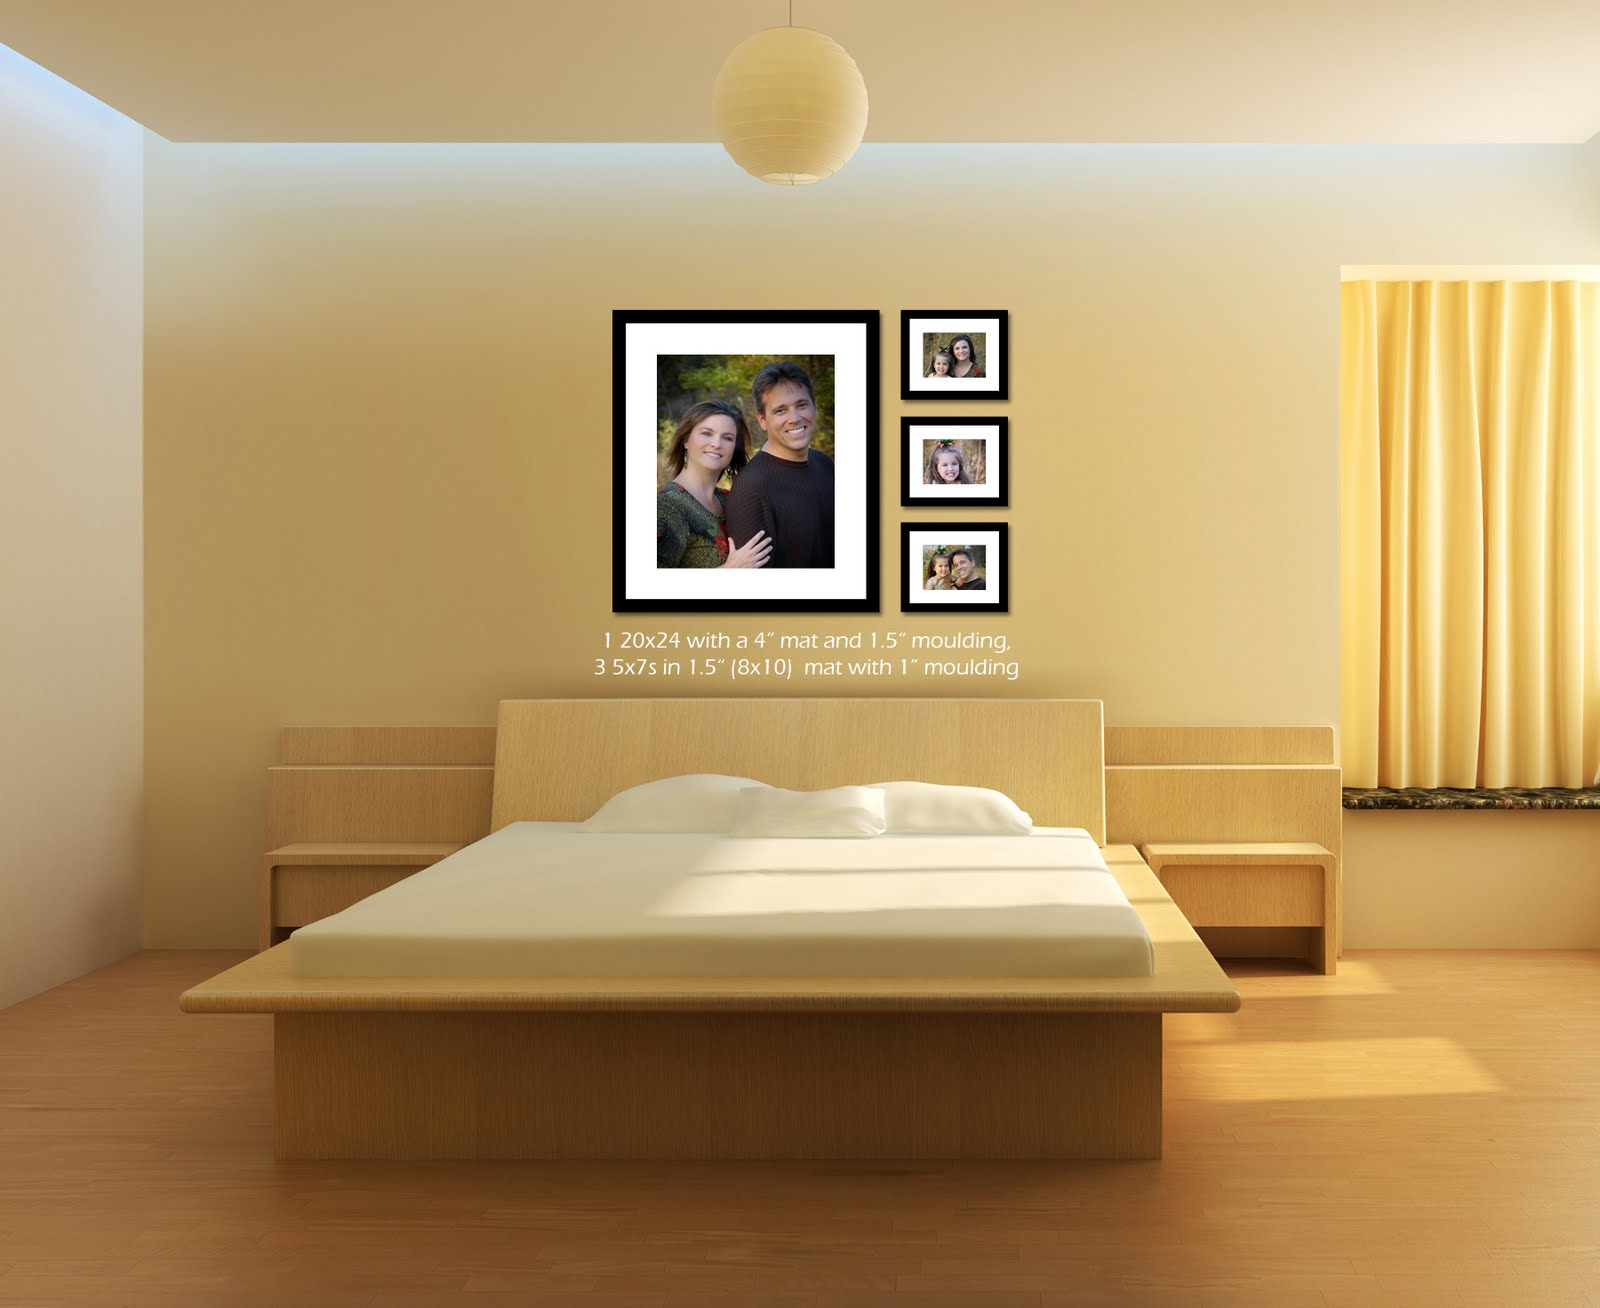 Andrea pender photography bedroom wall decoration suggestion dfw family photographer - Wall pictures for bedroom ...